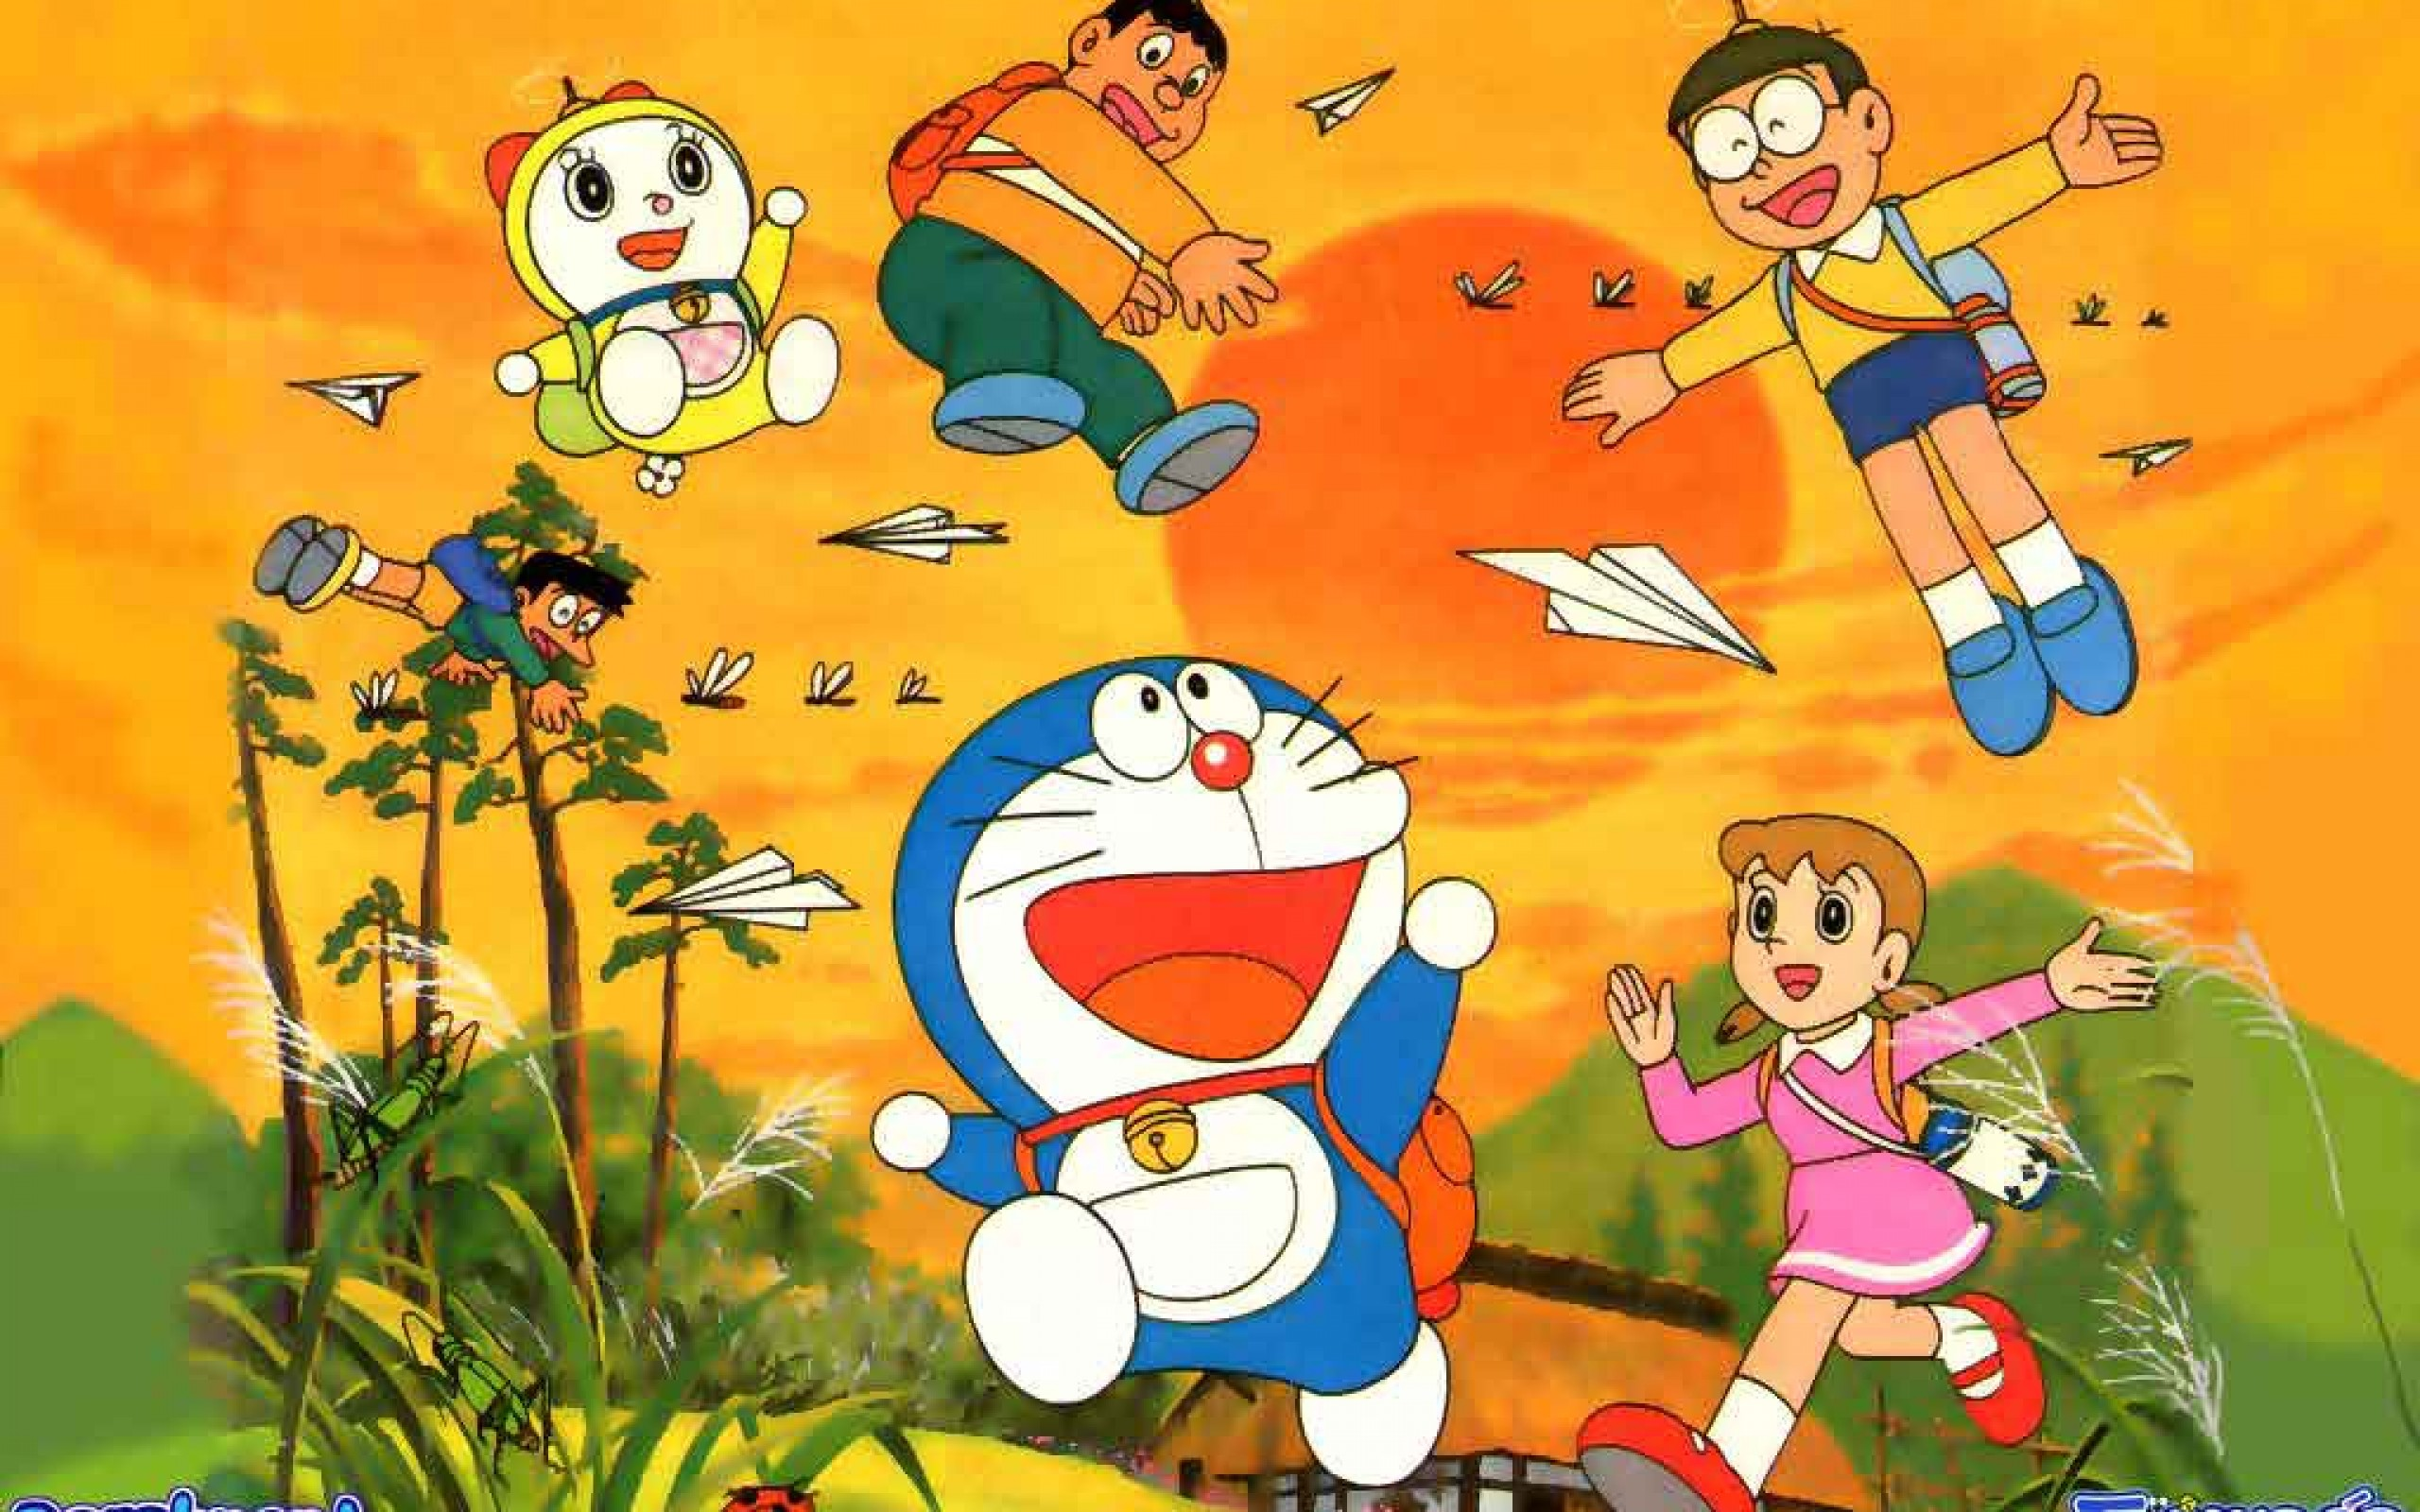 45 ] Doraemon Wallpaper Screensaver On WallpaperSafari